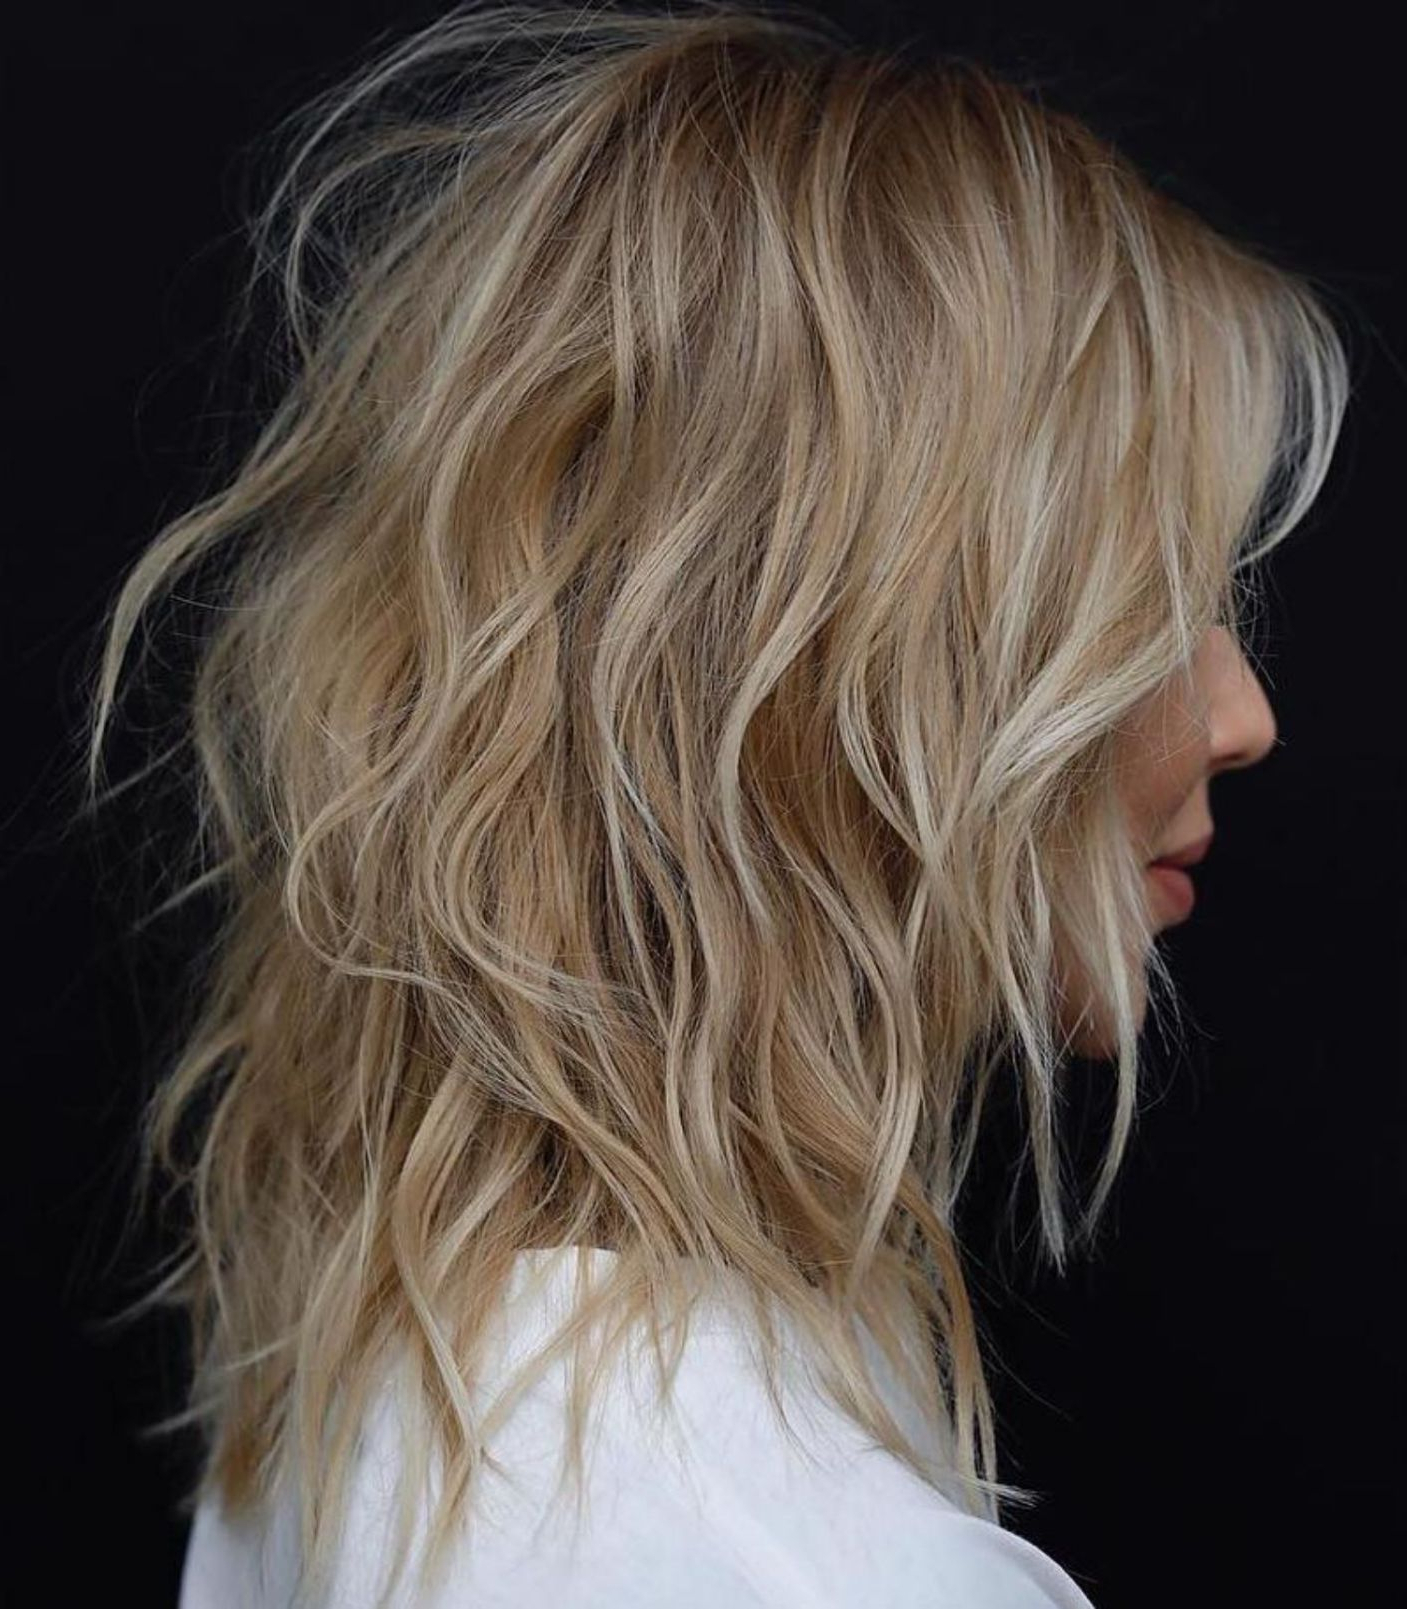 Most Popular Longer Tousled Caramel Blonde Shag Haircuts For 60 Best Variations Of A Medium Shag Haircut For Your (View 12 of 20)